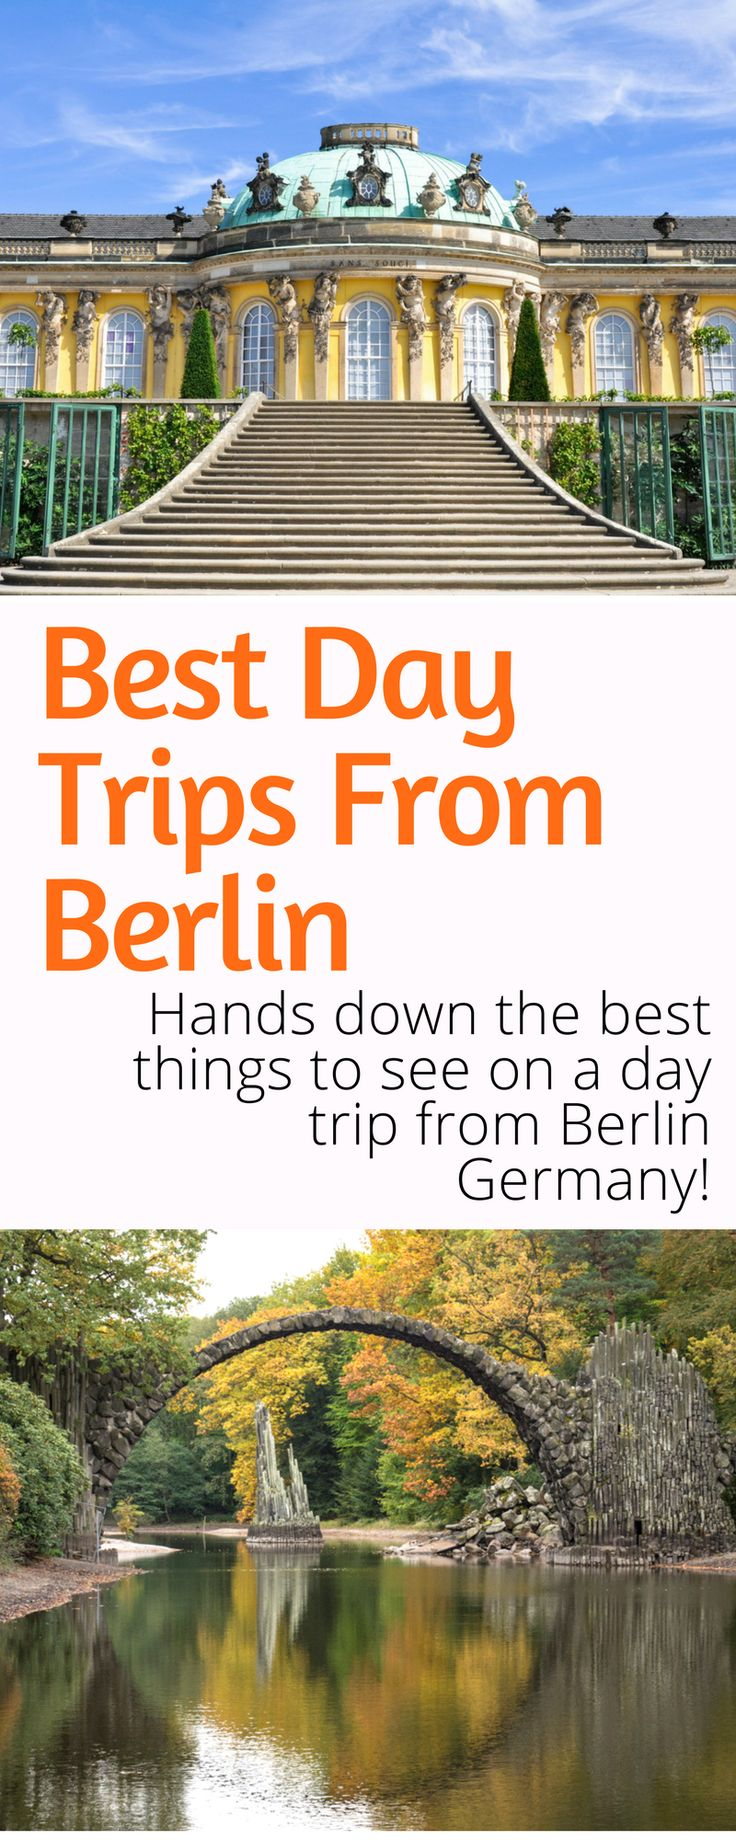 Best Day Trips from Berlin: A guide to the best destinations near Berlin Germany. Hiking, history, and beaches and more! Click here to start planning your day trips from Berlin!